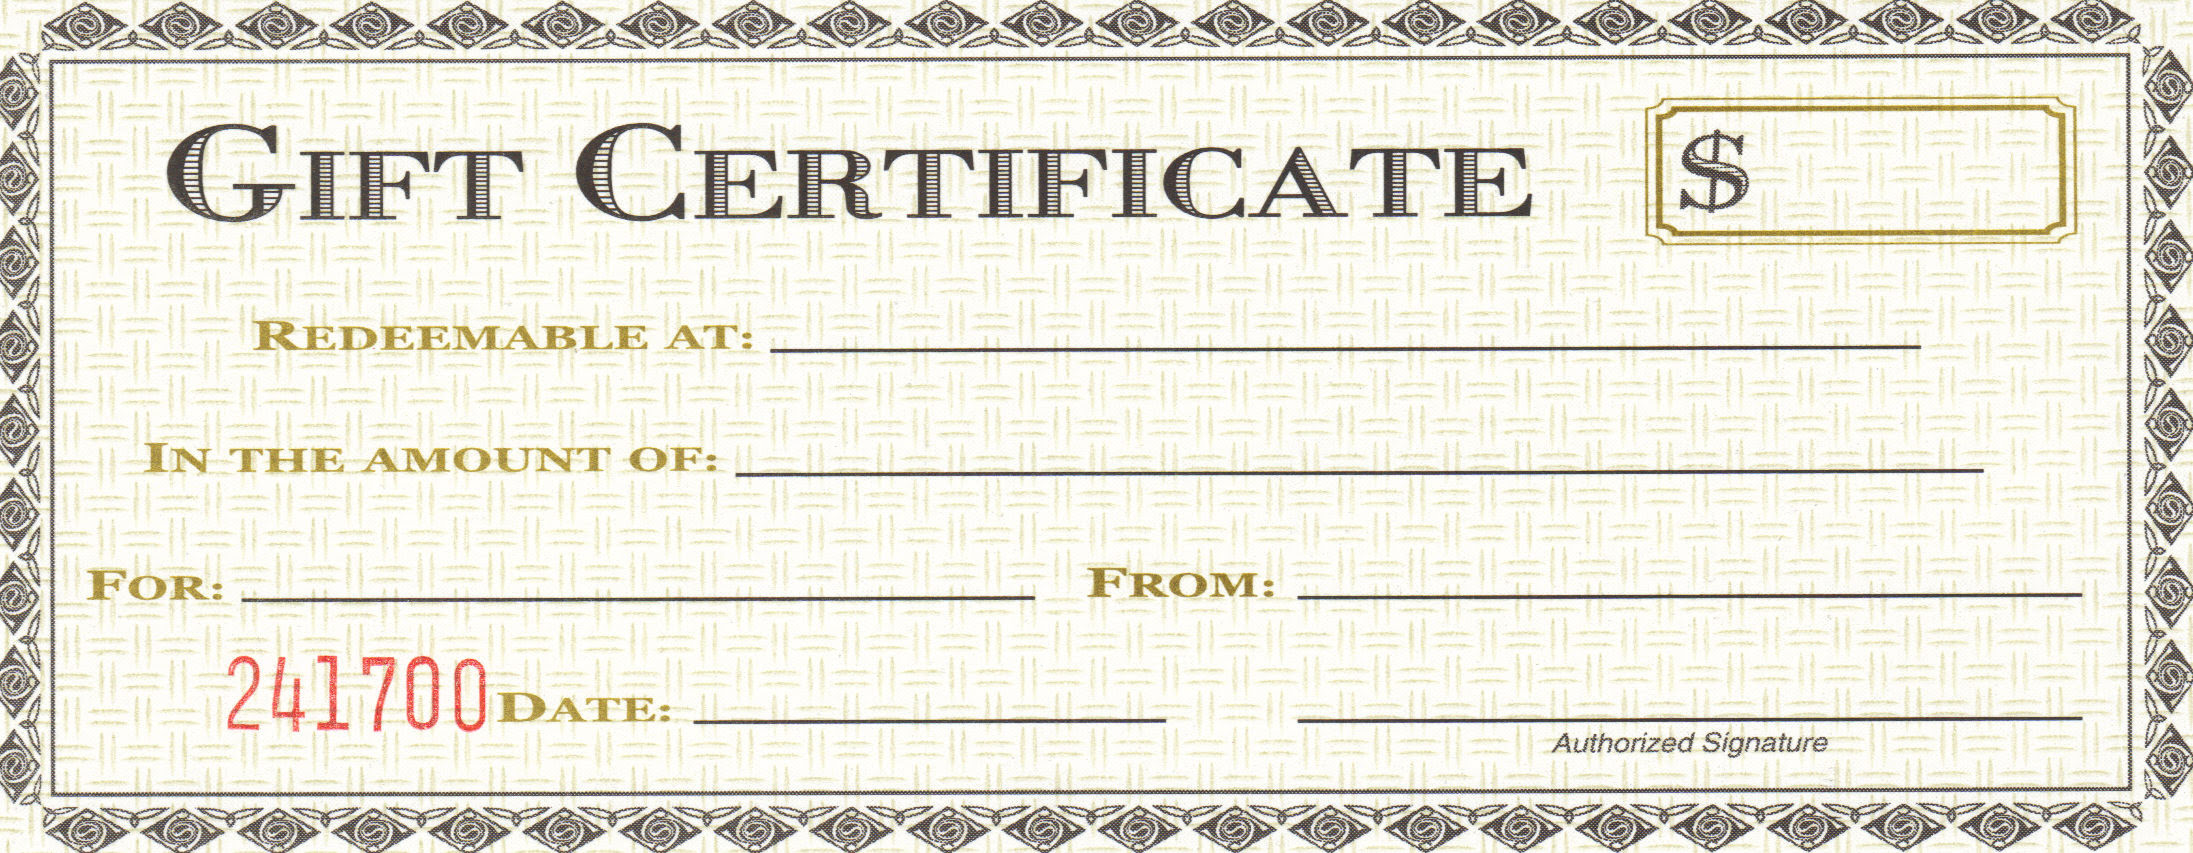 28 Cool Printable Gift Certificates – Kitty Baby Love